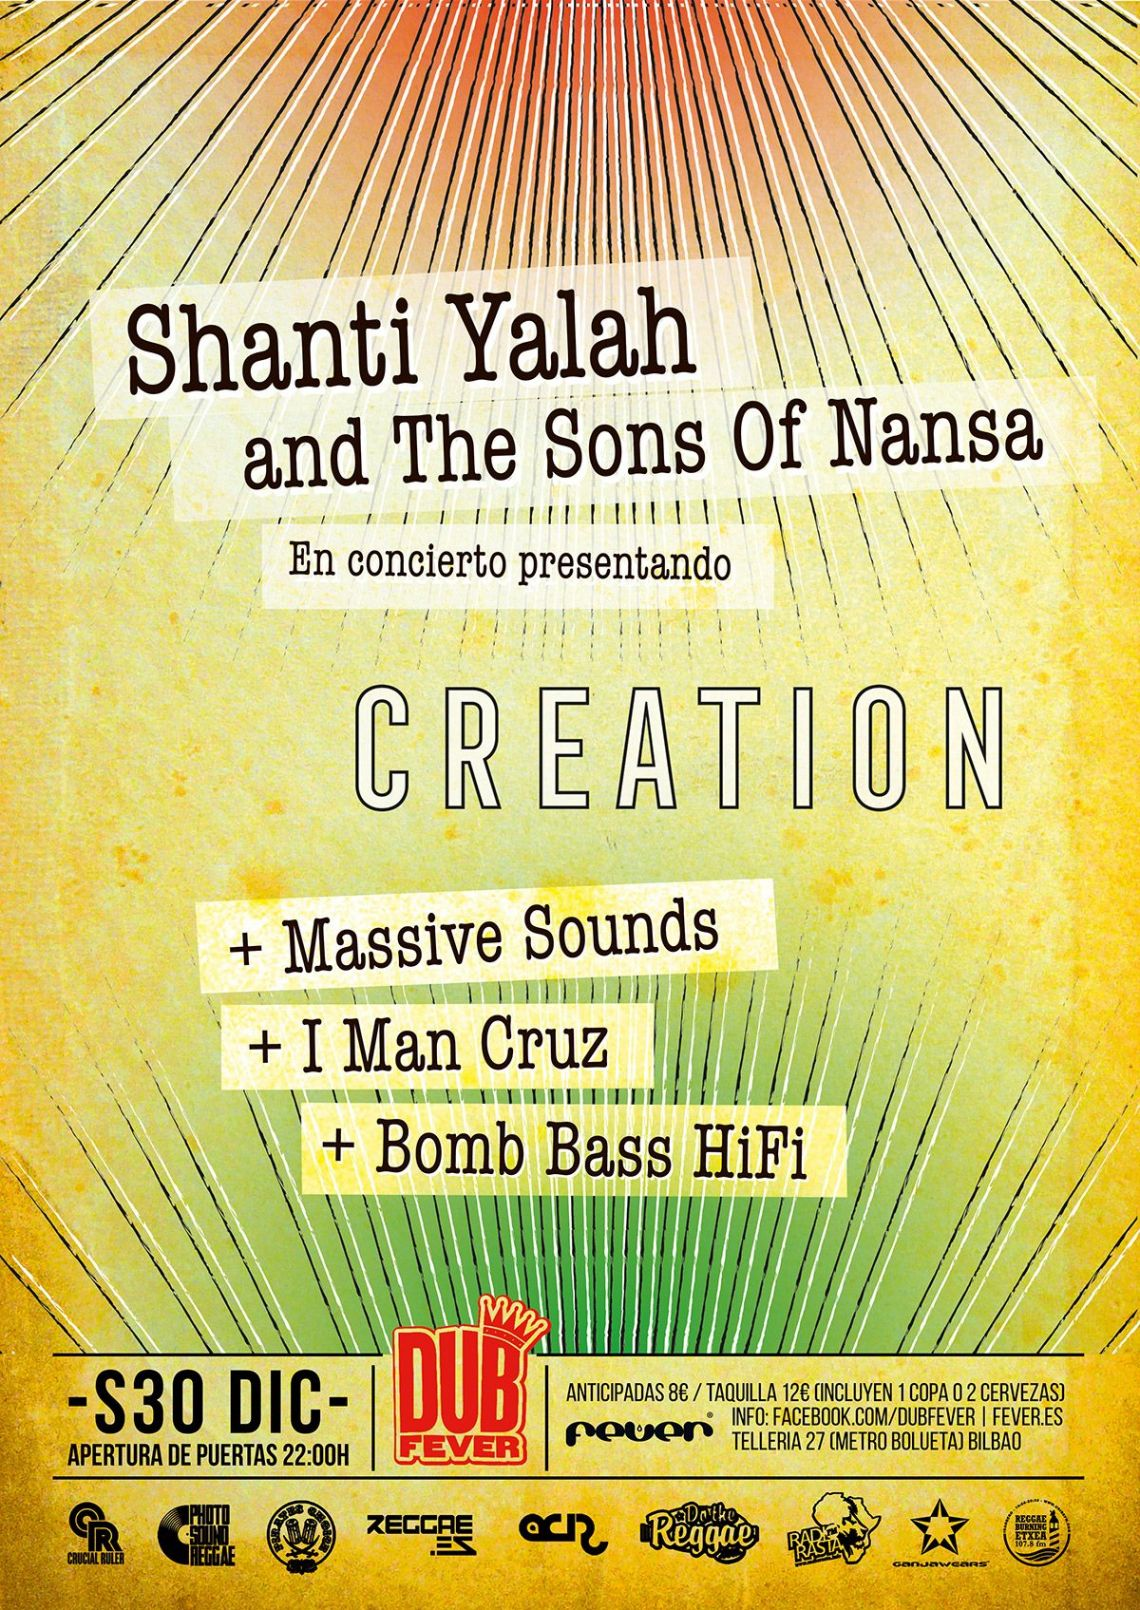 DUB FEVER Shanti Yalah & The Sons of Nansa